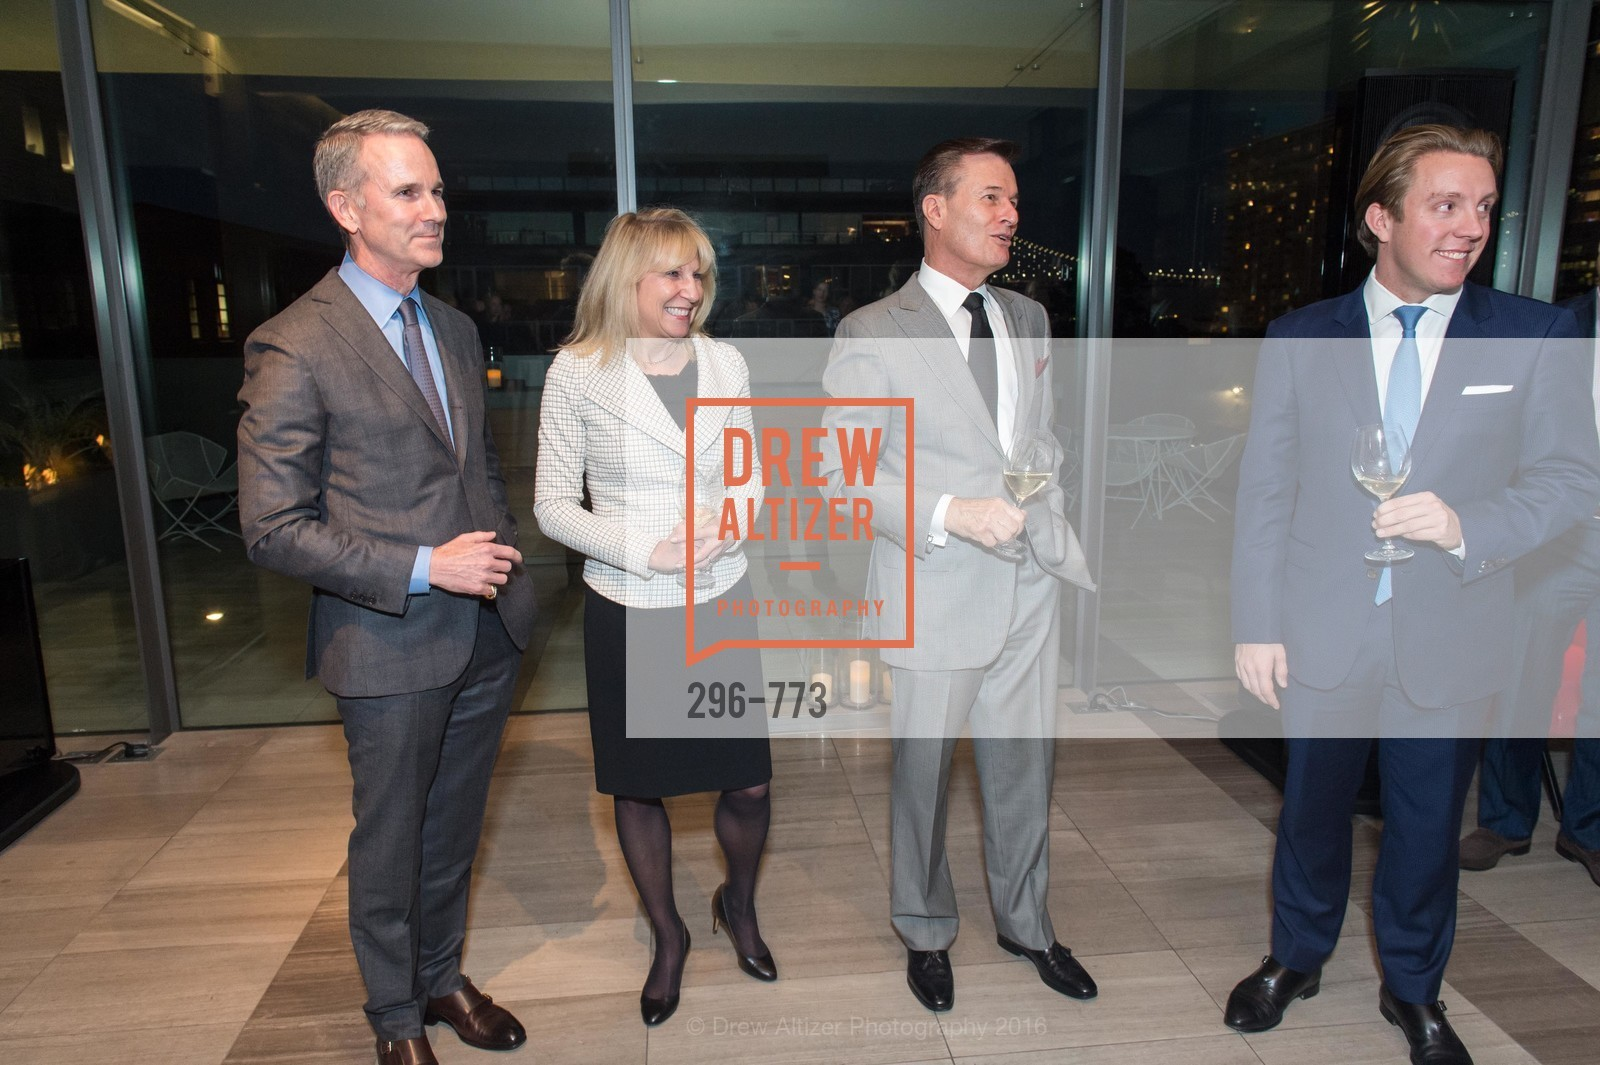 Jeffrey Gibson, Kathy Korte, Frank Symons, Brad Nelson, Sotheby's International Realty's Celebrates the New Year, The Battery, Penthouse. 717 Battery St, January 27th, 2016,Drew Altizer, Drew Altizer Photography, full-service agency, private events, San Francisco photographer, photographer california